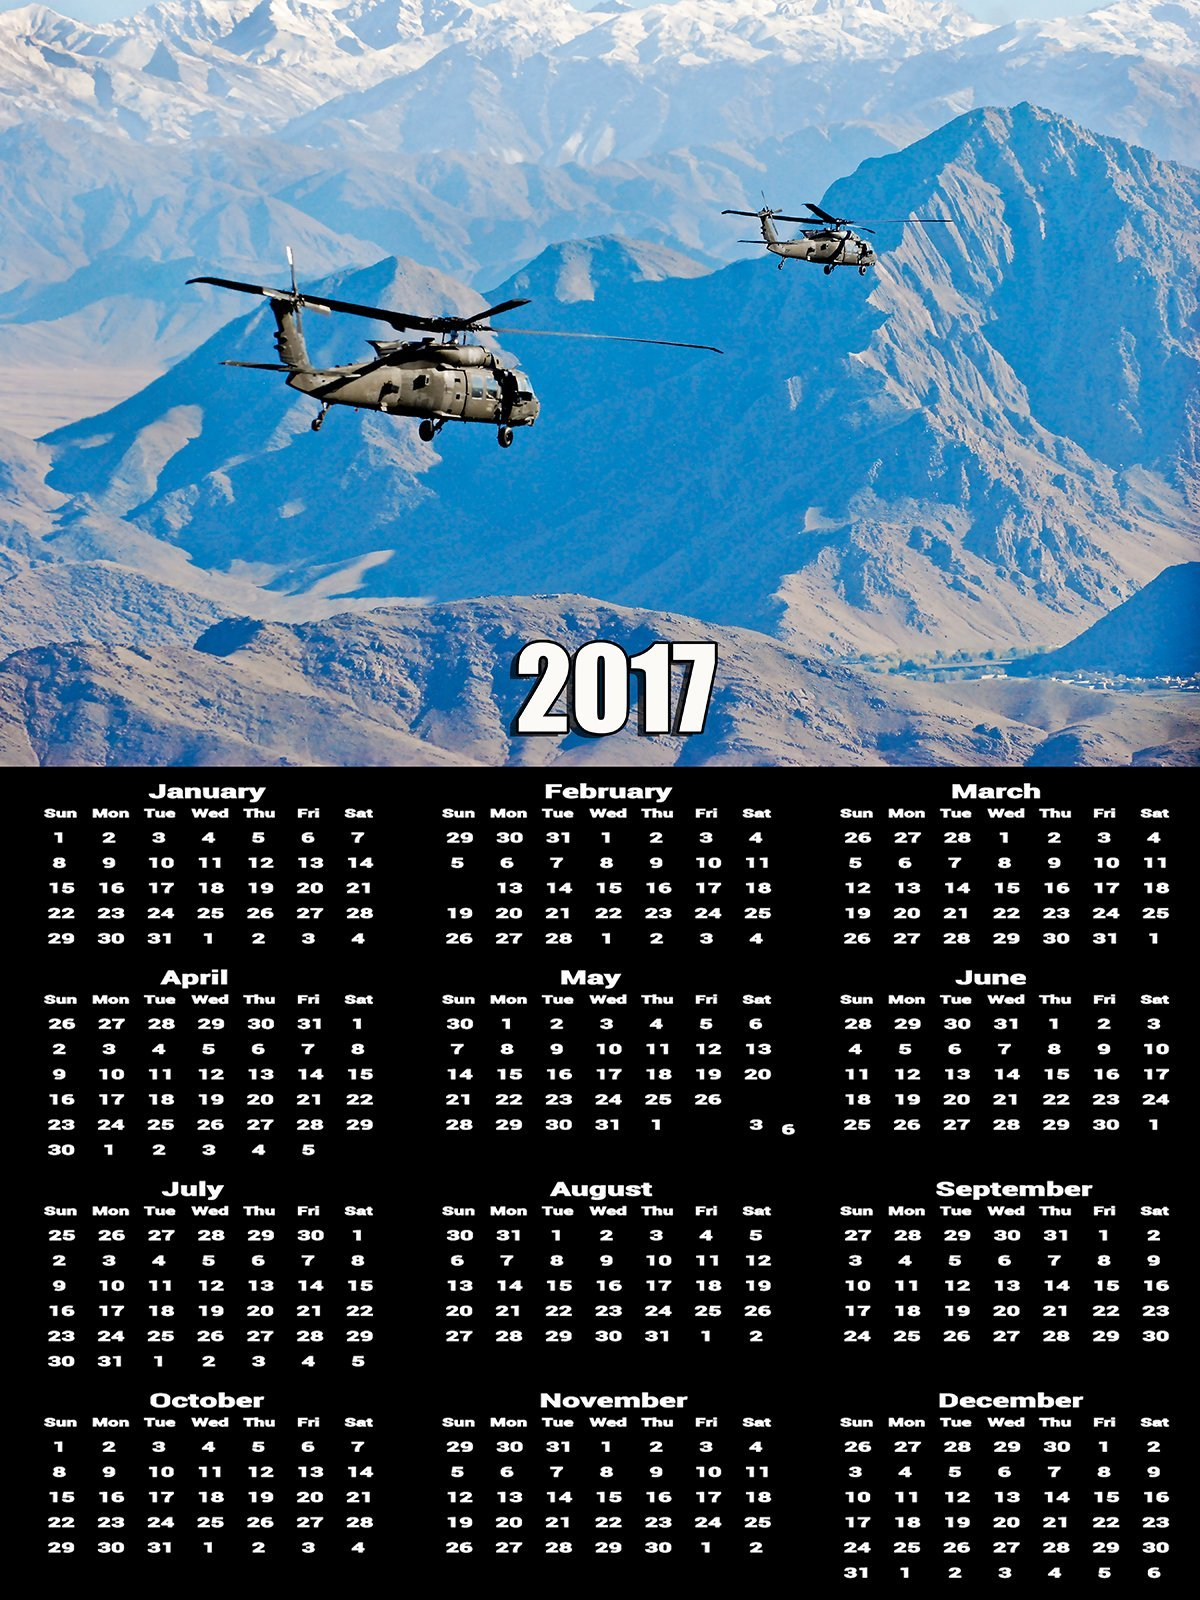 2017 Army Calendar Poster UH-60 Black Hawk Helicopter Poster Calendar